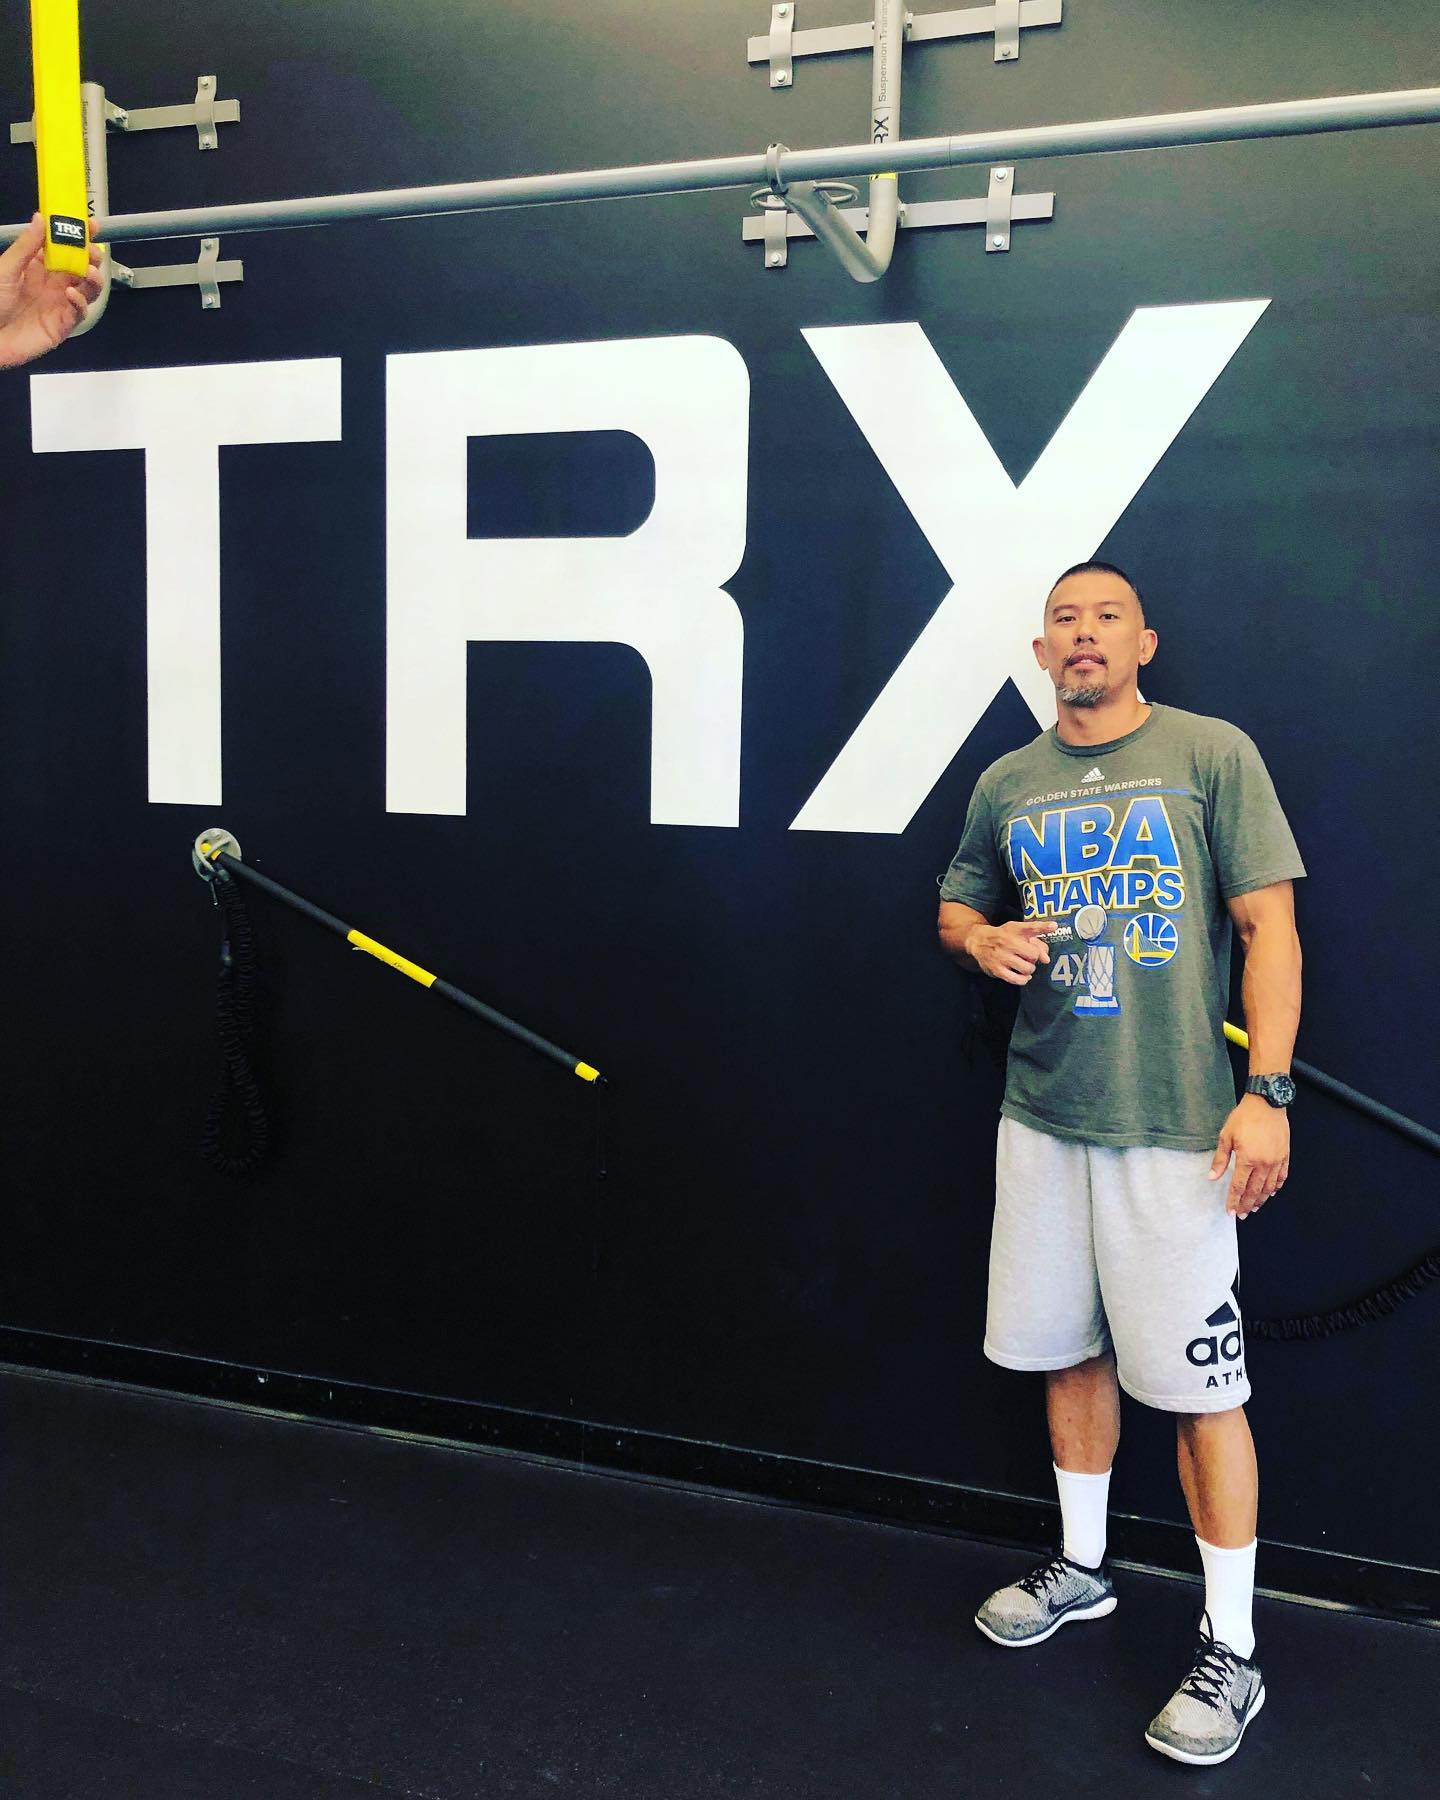 Mark Jumuad - Coach MJ is no newbie when it comes to fitness. He started CrossFit in 2010. A few years later MJ moved back to The Philippines. In 2014 MJ and some friends opened up Stayfit Cebu. Coach MJ comes to us with a wealth of knowledge.TRX certification 2019